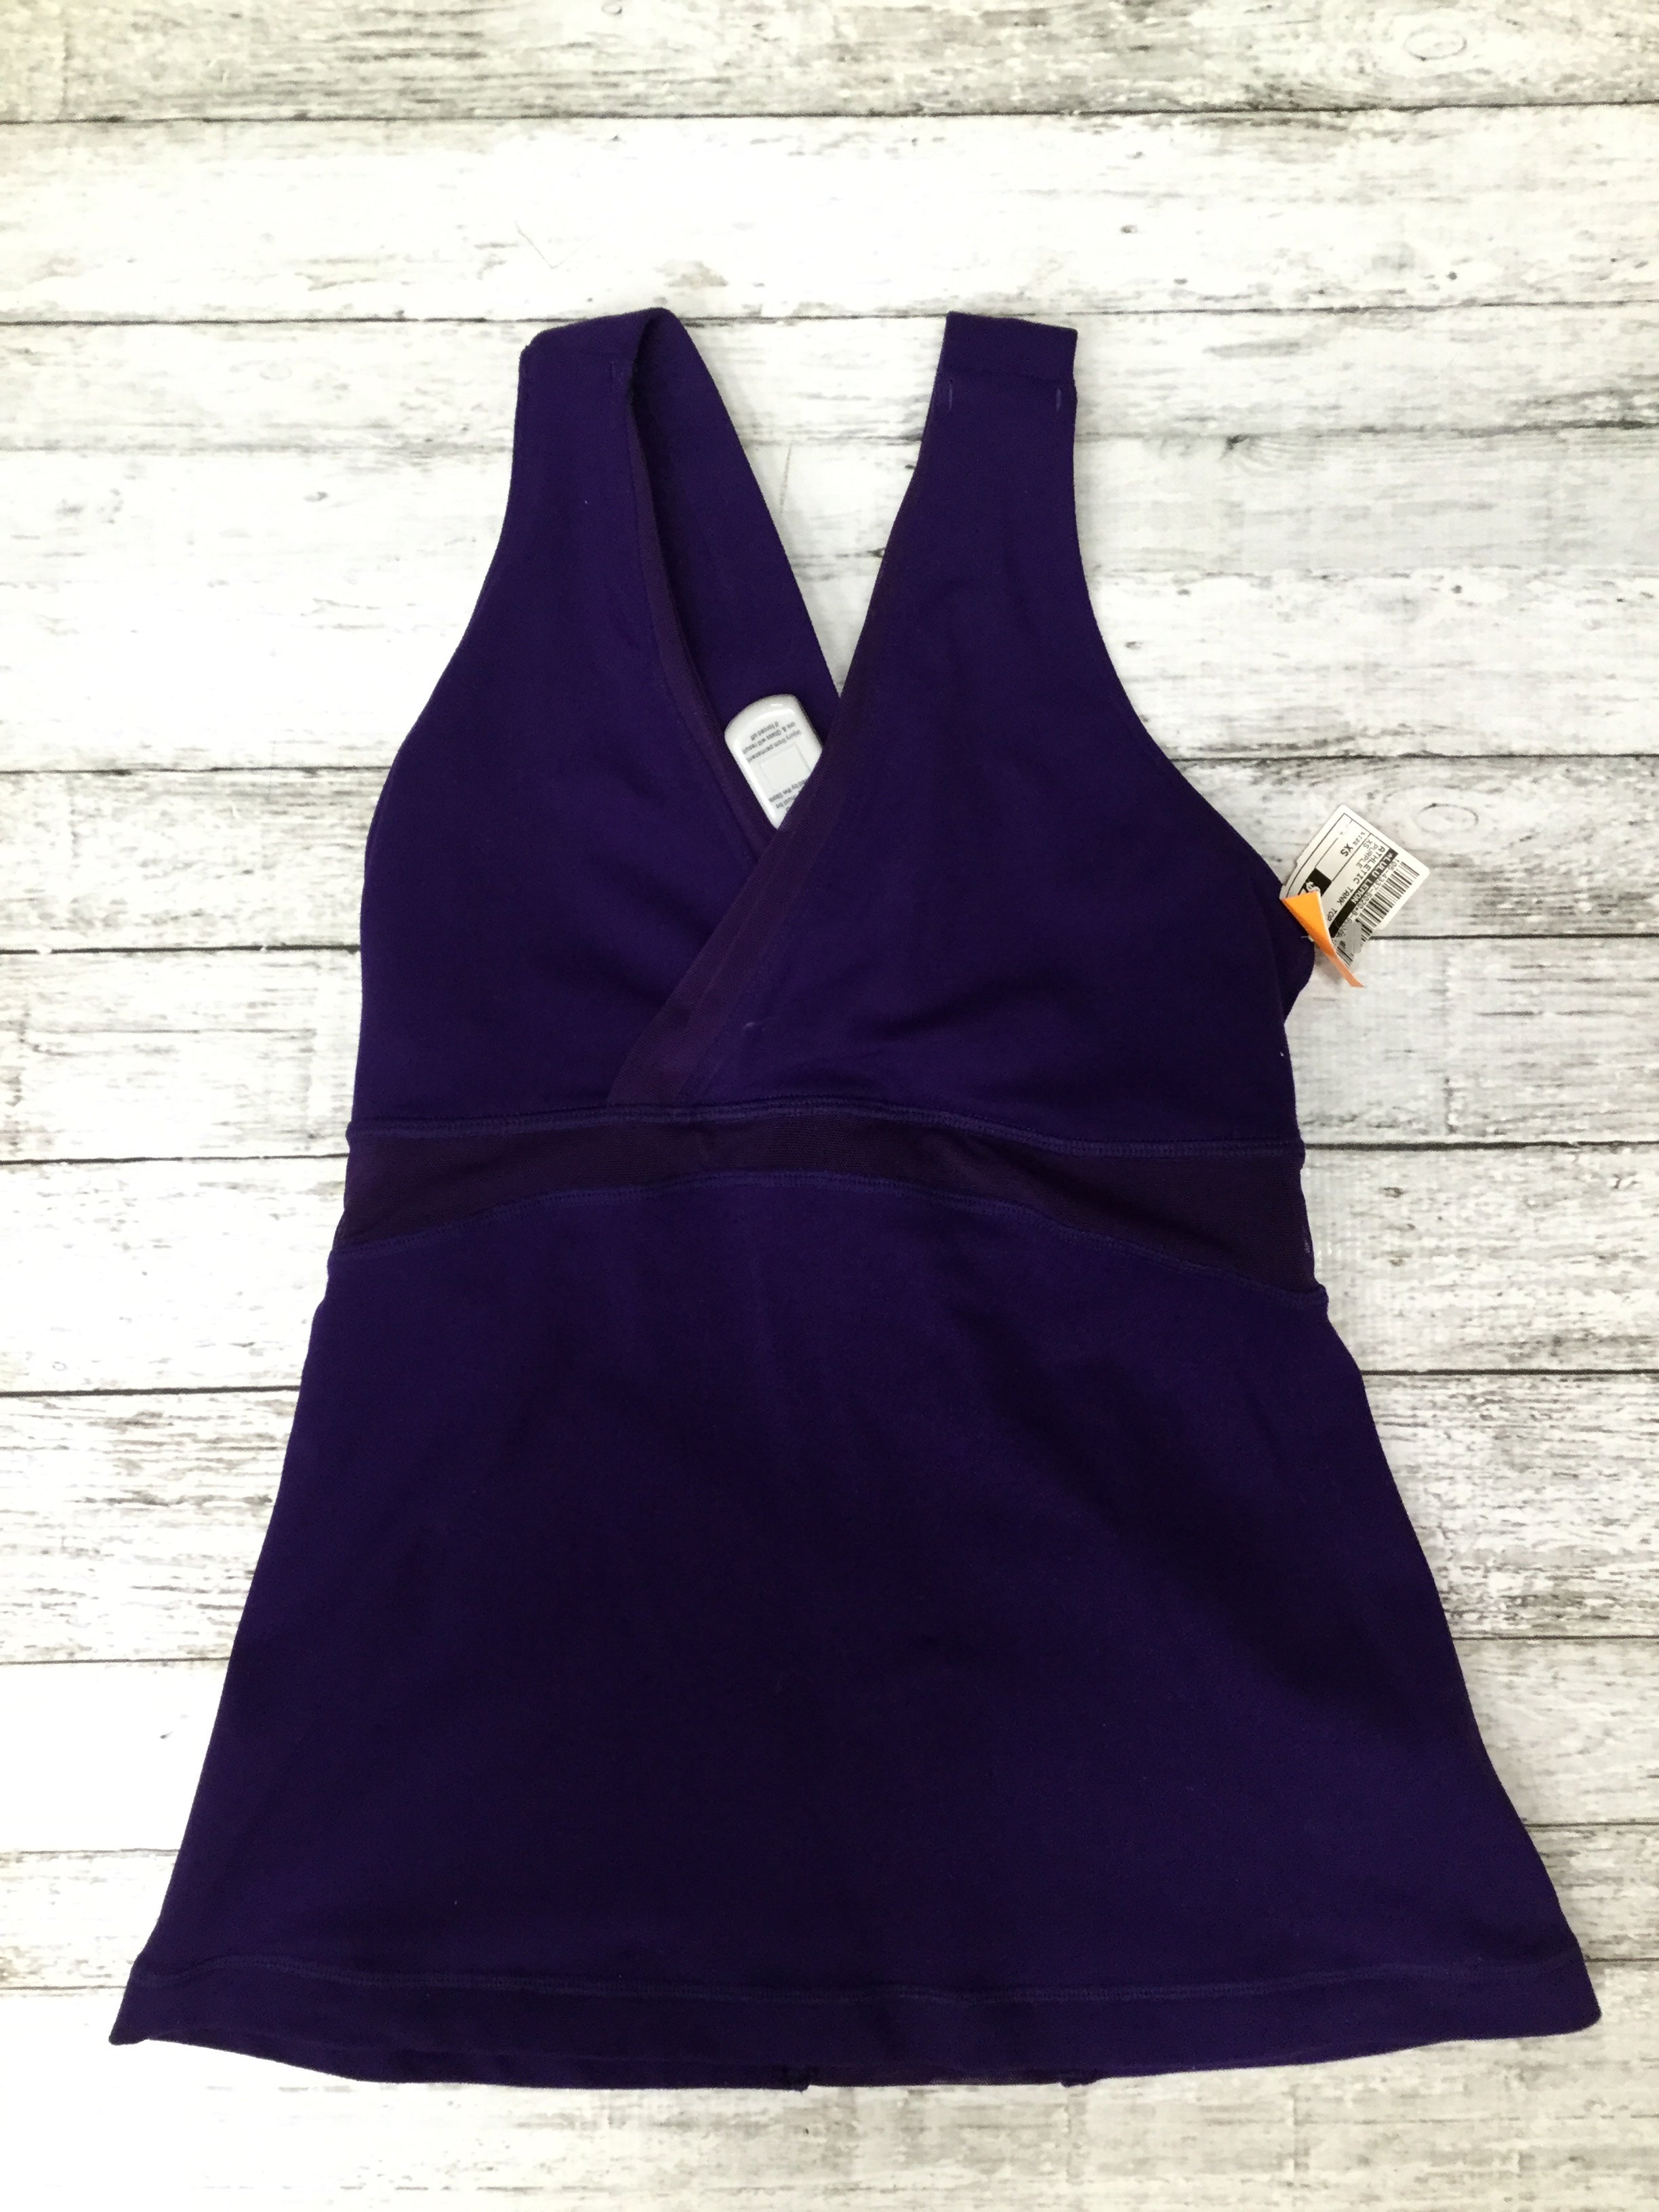 Primary Photo - BRAND: LULULEMON , STYLE: ATHLETIC TANK TOP , COLOR: PURPLE , SIZE: XS , SKU: 105-4337-5020